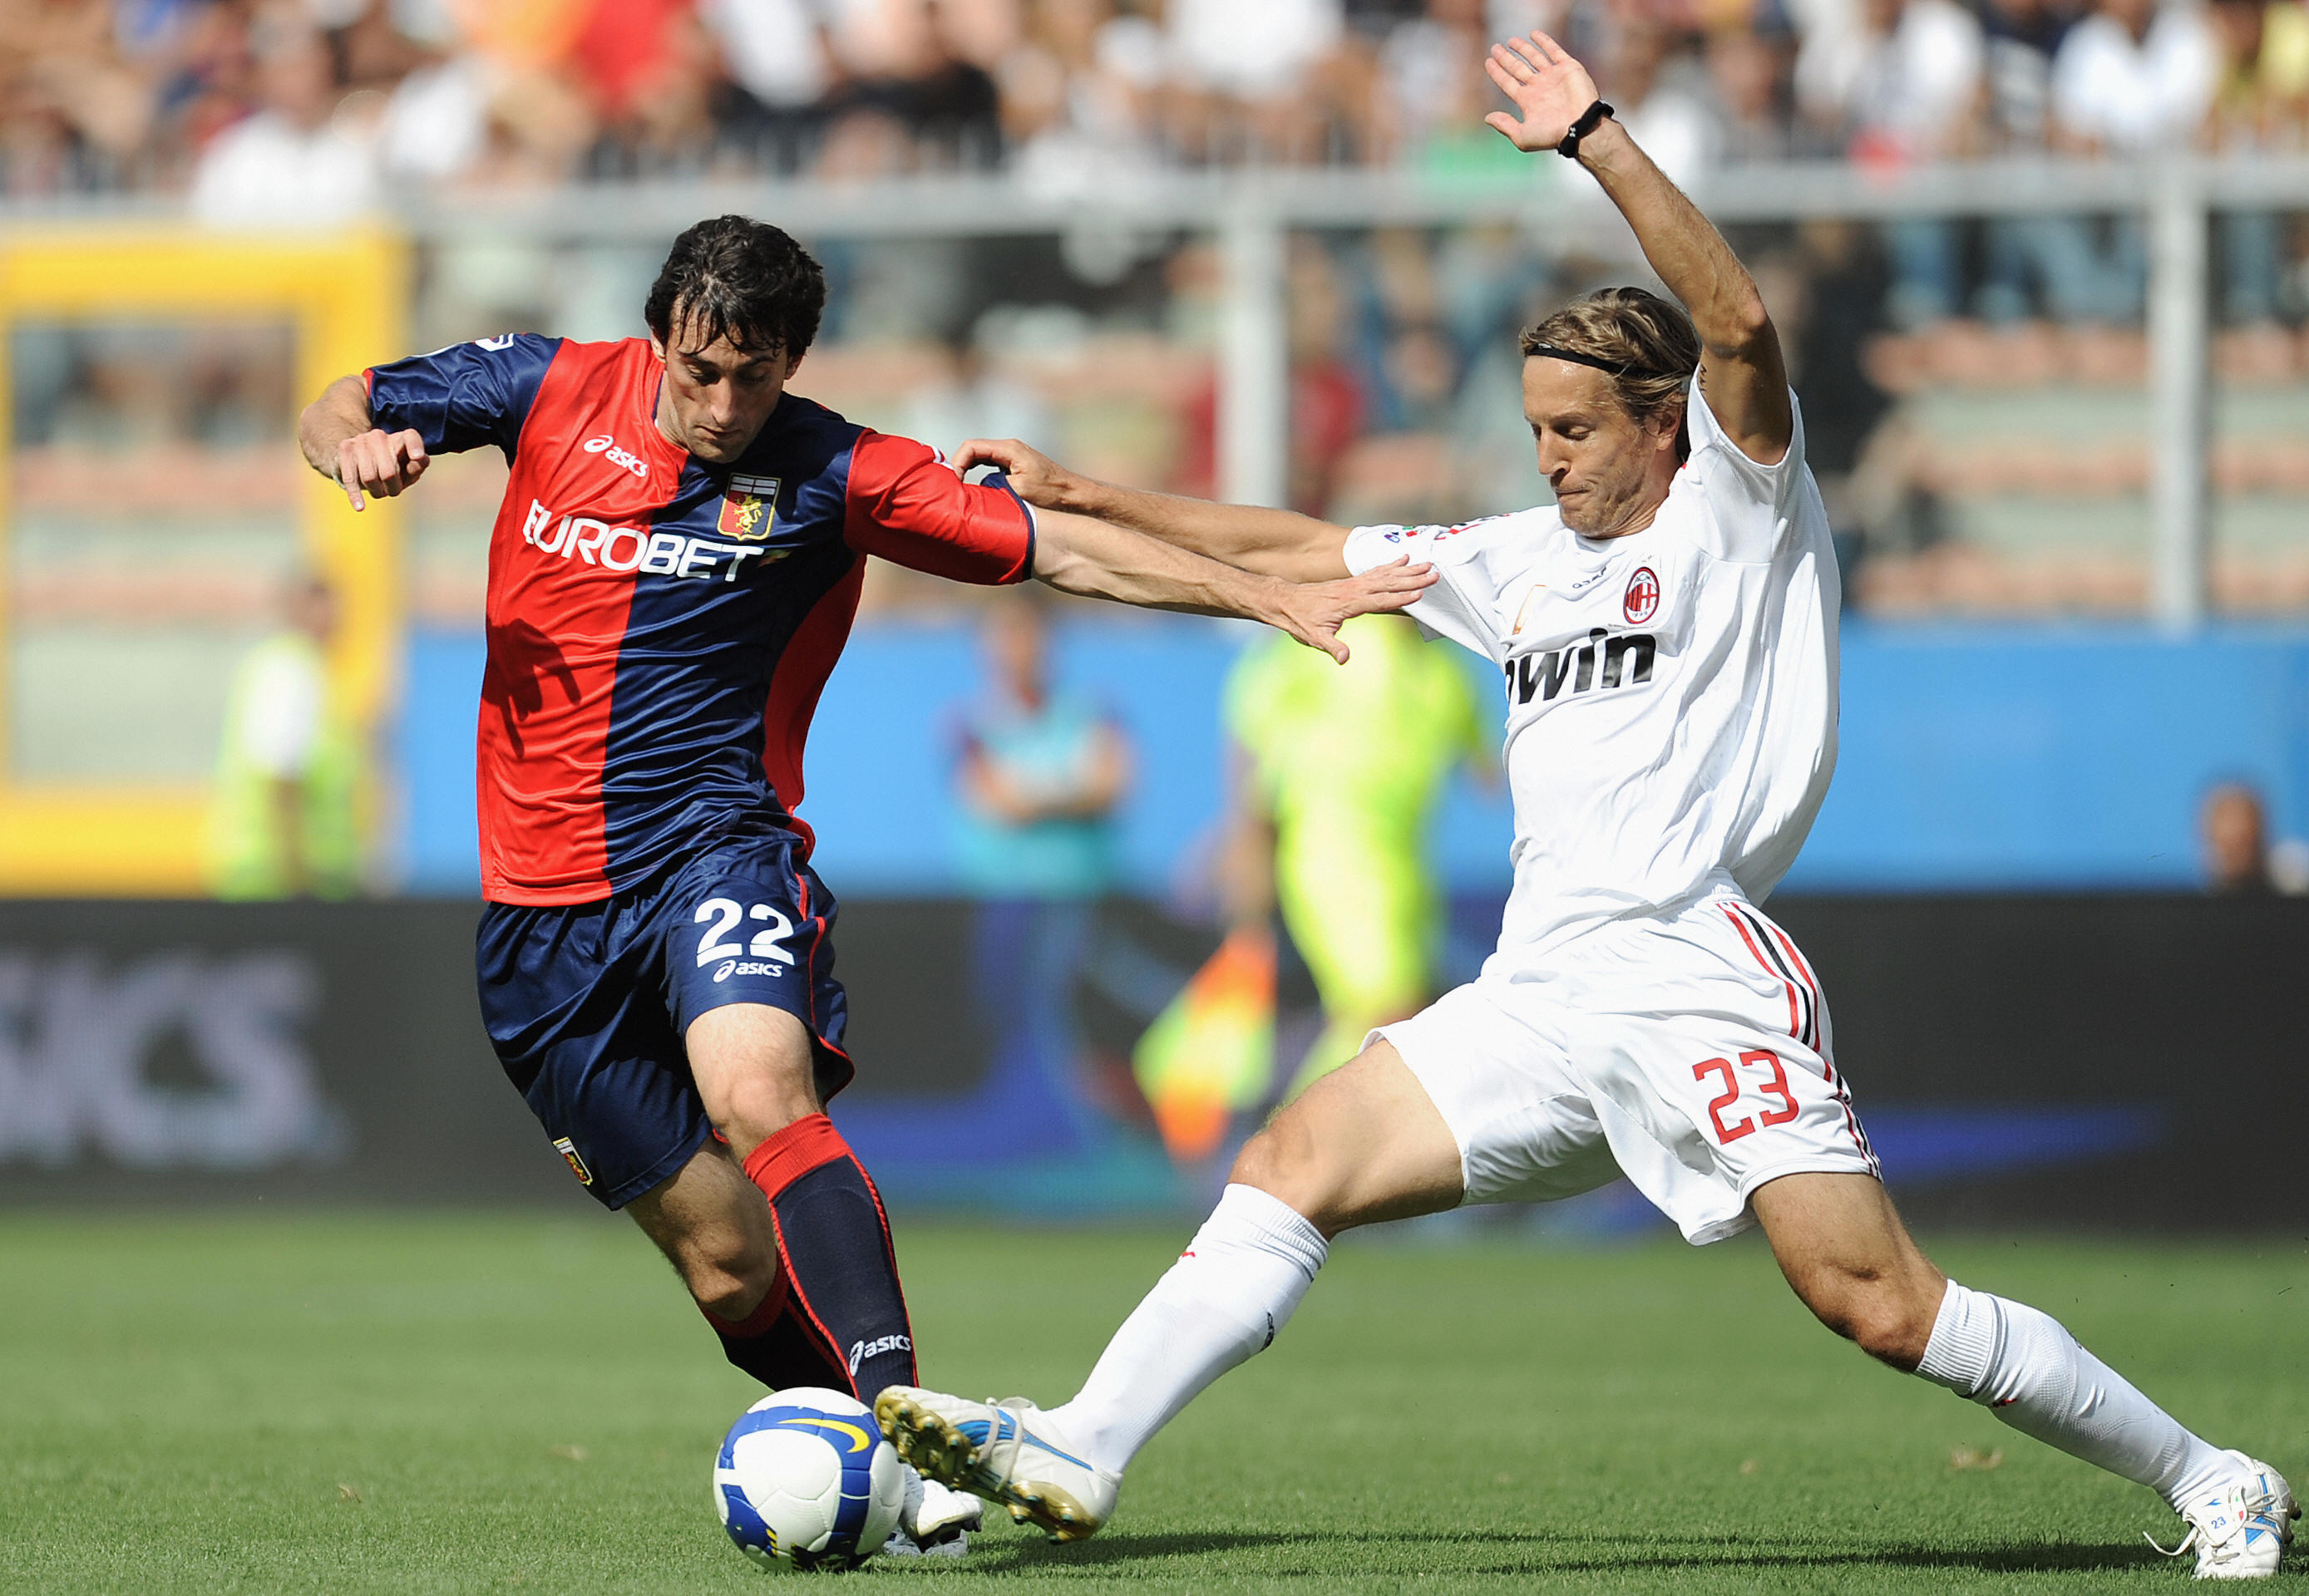 AC Milan's midfielder Massimo Ambrosini (R) fights for the ball with Genoa's forward Diego Alberto Milito during their Italian Serie A football match at Genoa's Luigi Ferraris stadium on September 14, 2008. AFP PHOTO/ Filippo MONTEFORTE (Photo credit should read FILIPPO MONTEFORTE/AFP/Getty Images)